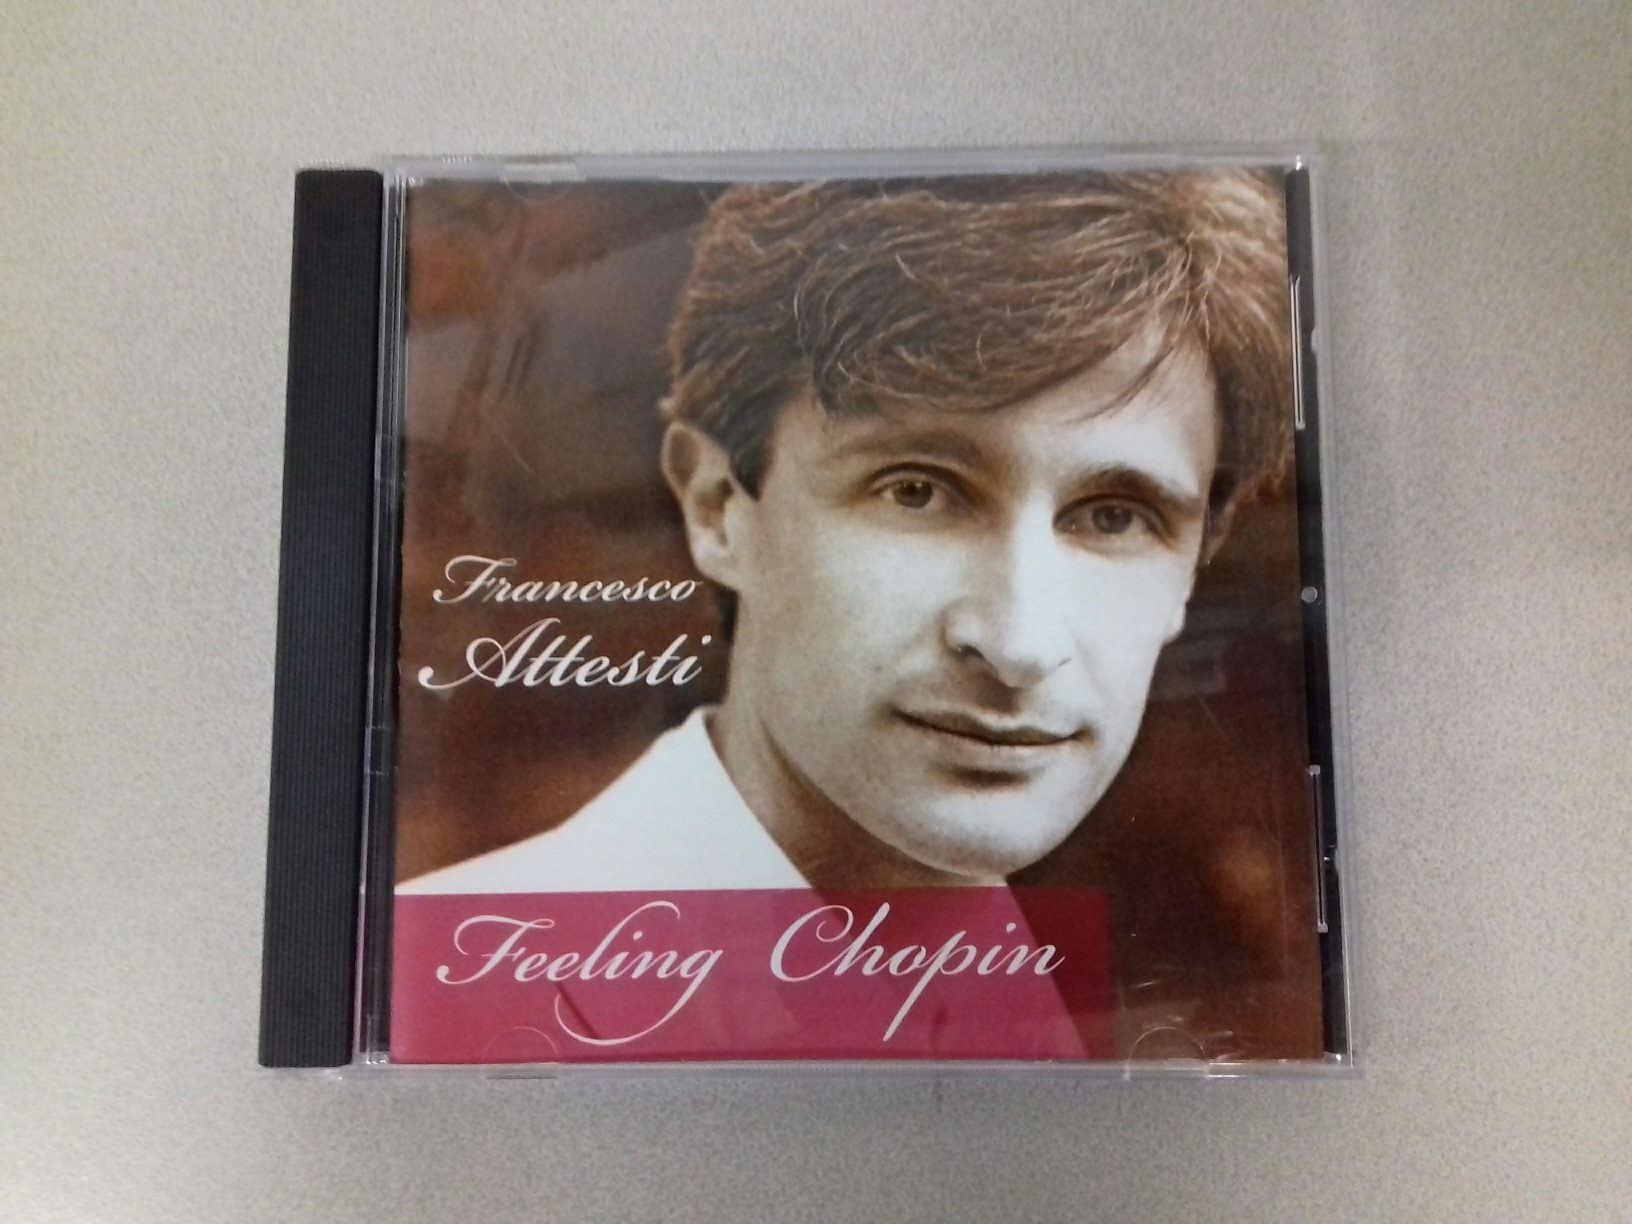 "Duplicazione CD Francesco Attesti ""Feeling Chopin"""